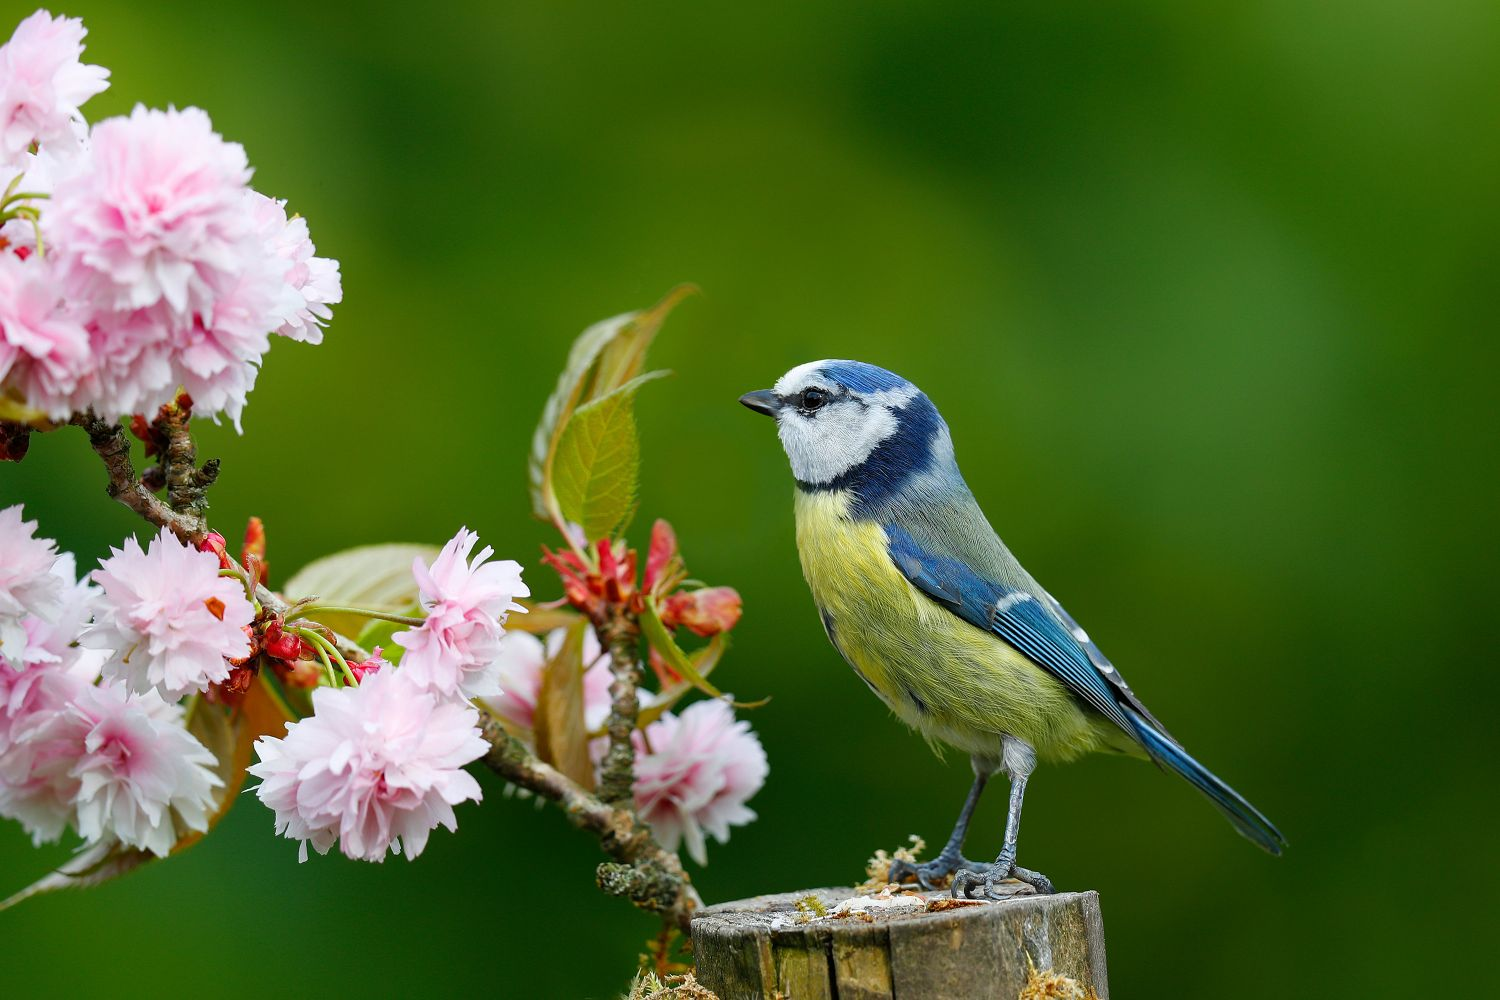 A Blue Tit amongst the Cherry Blossom by wildlife photographer Martin Lawrence